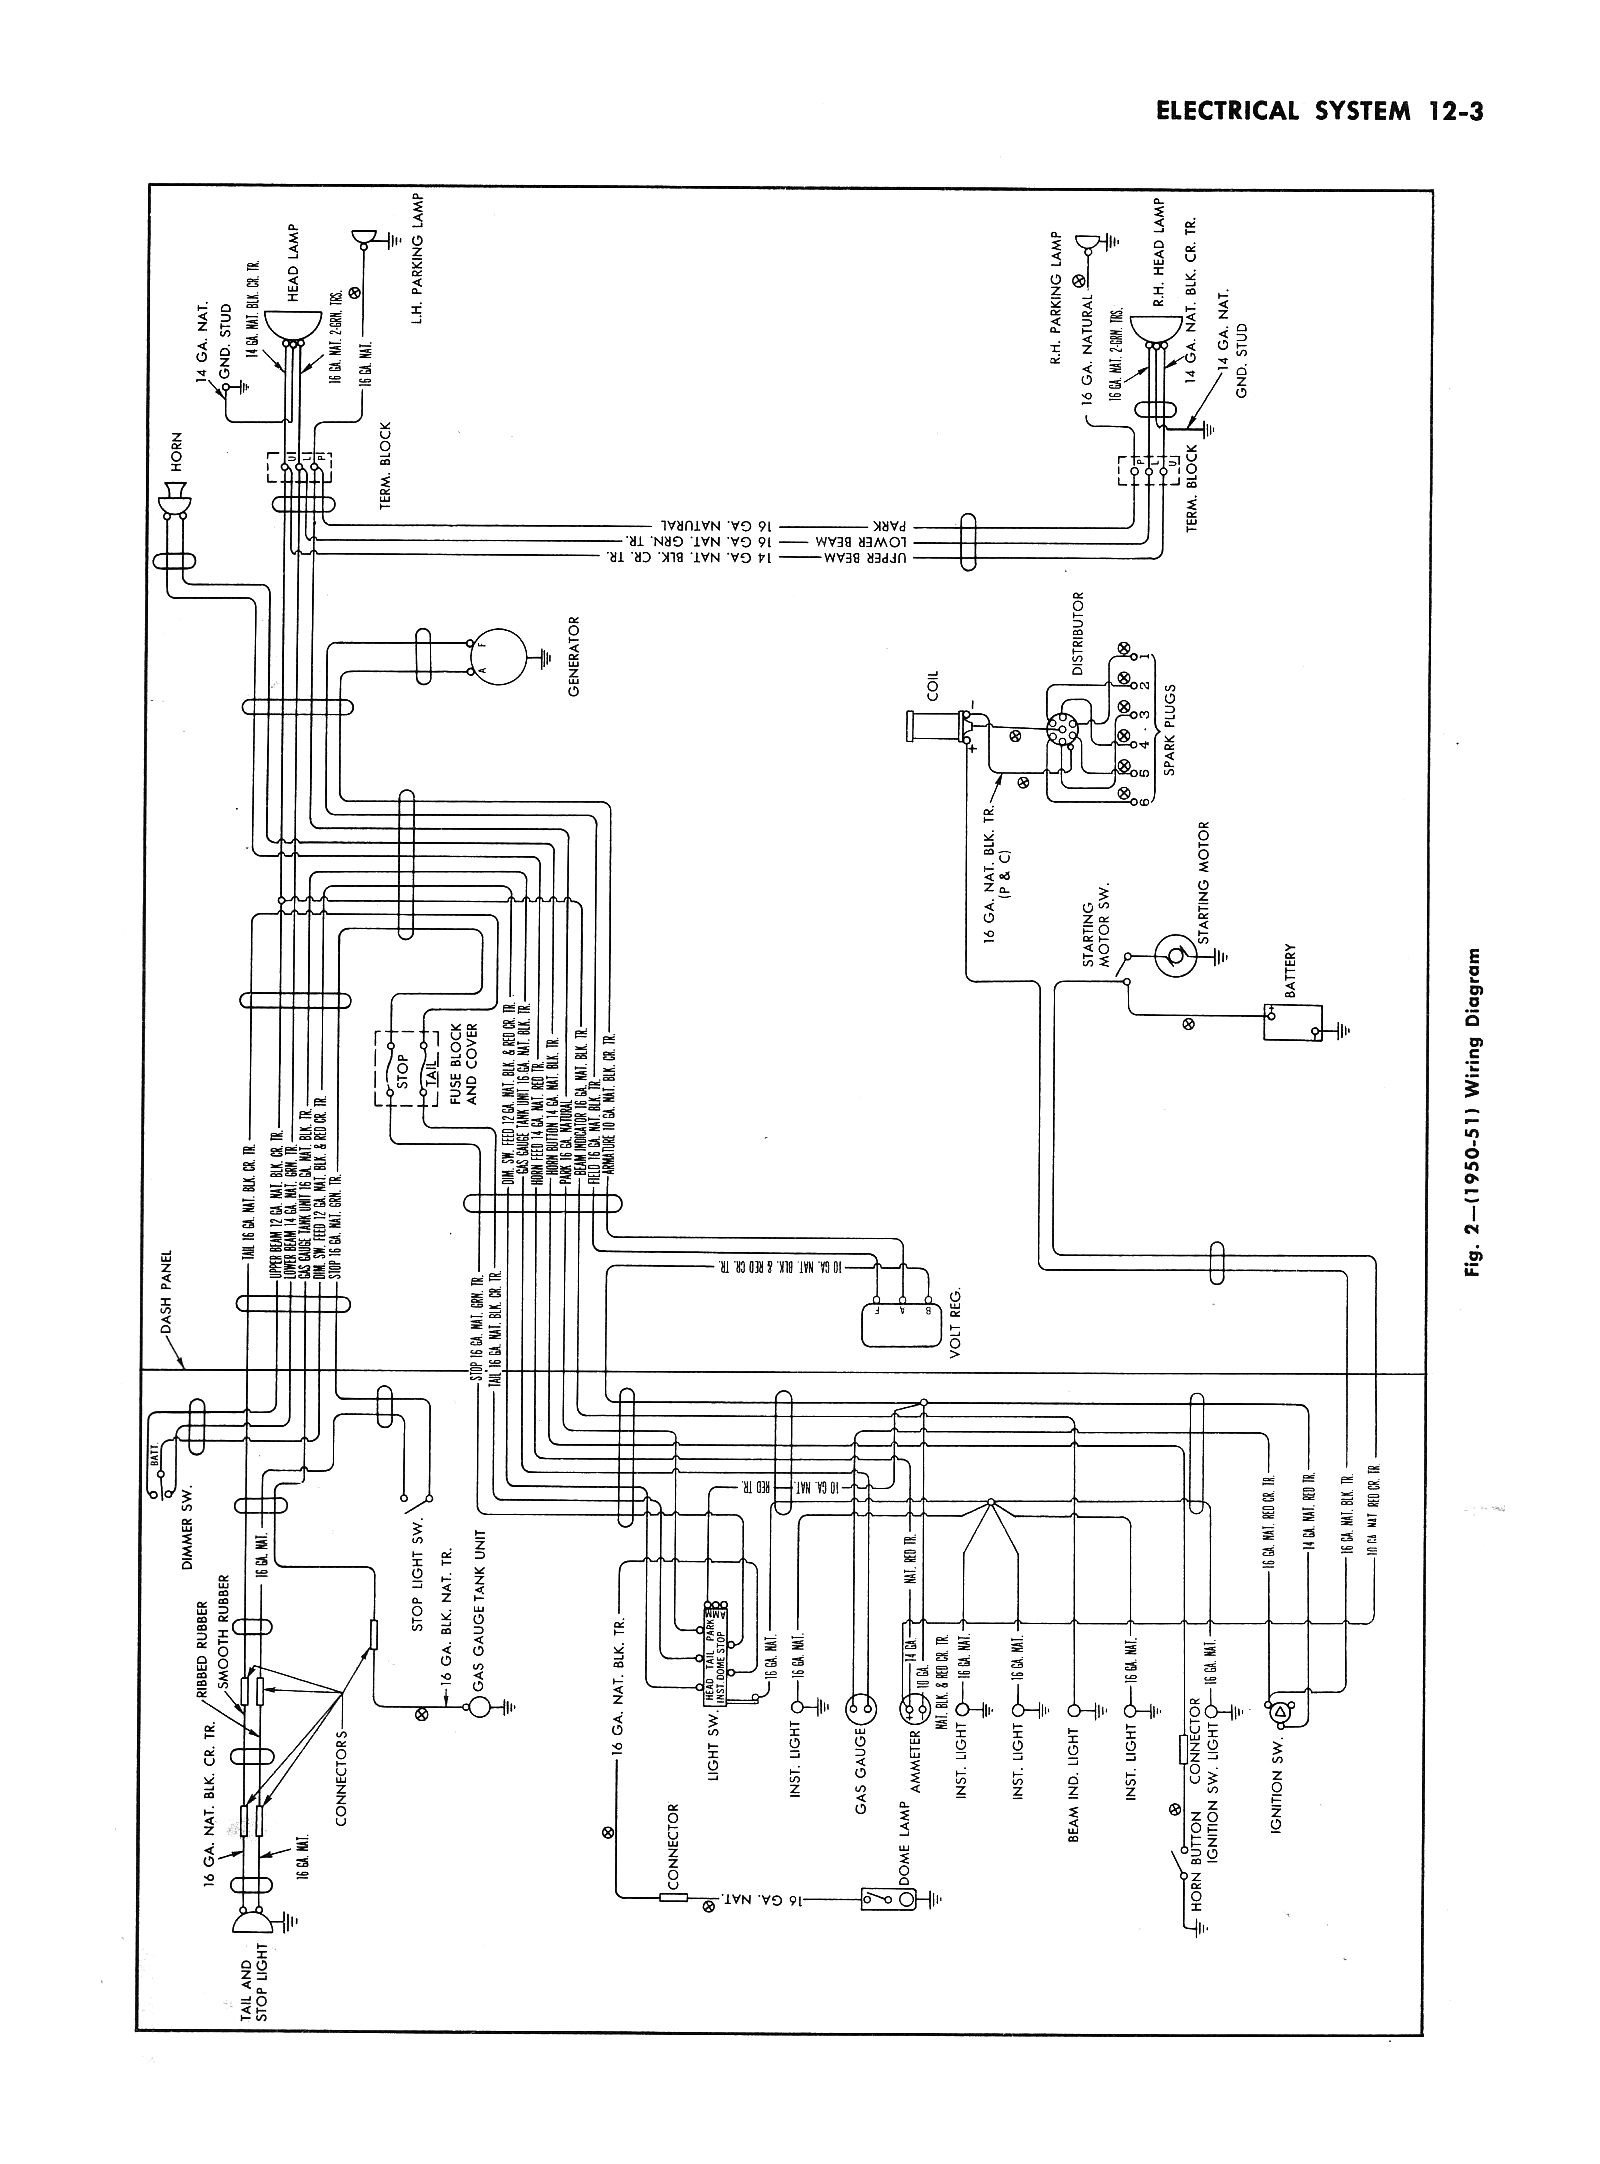 50ctsm1203 195ochevytruck wiring diagram 1950 chevy truck wiring diagram Ford Schematics at bayanpartner.co